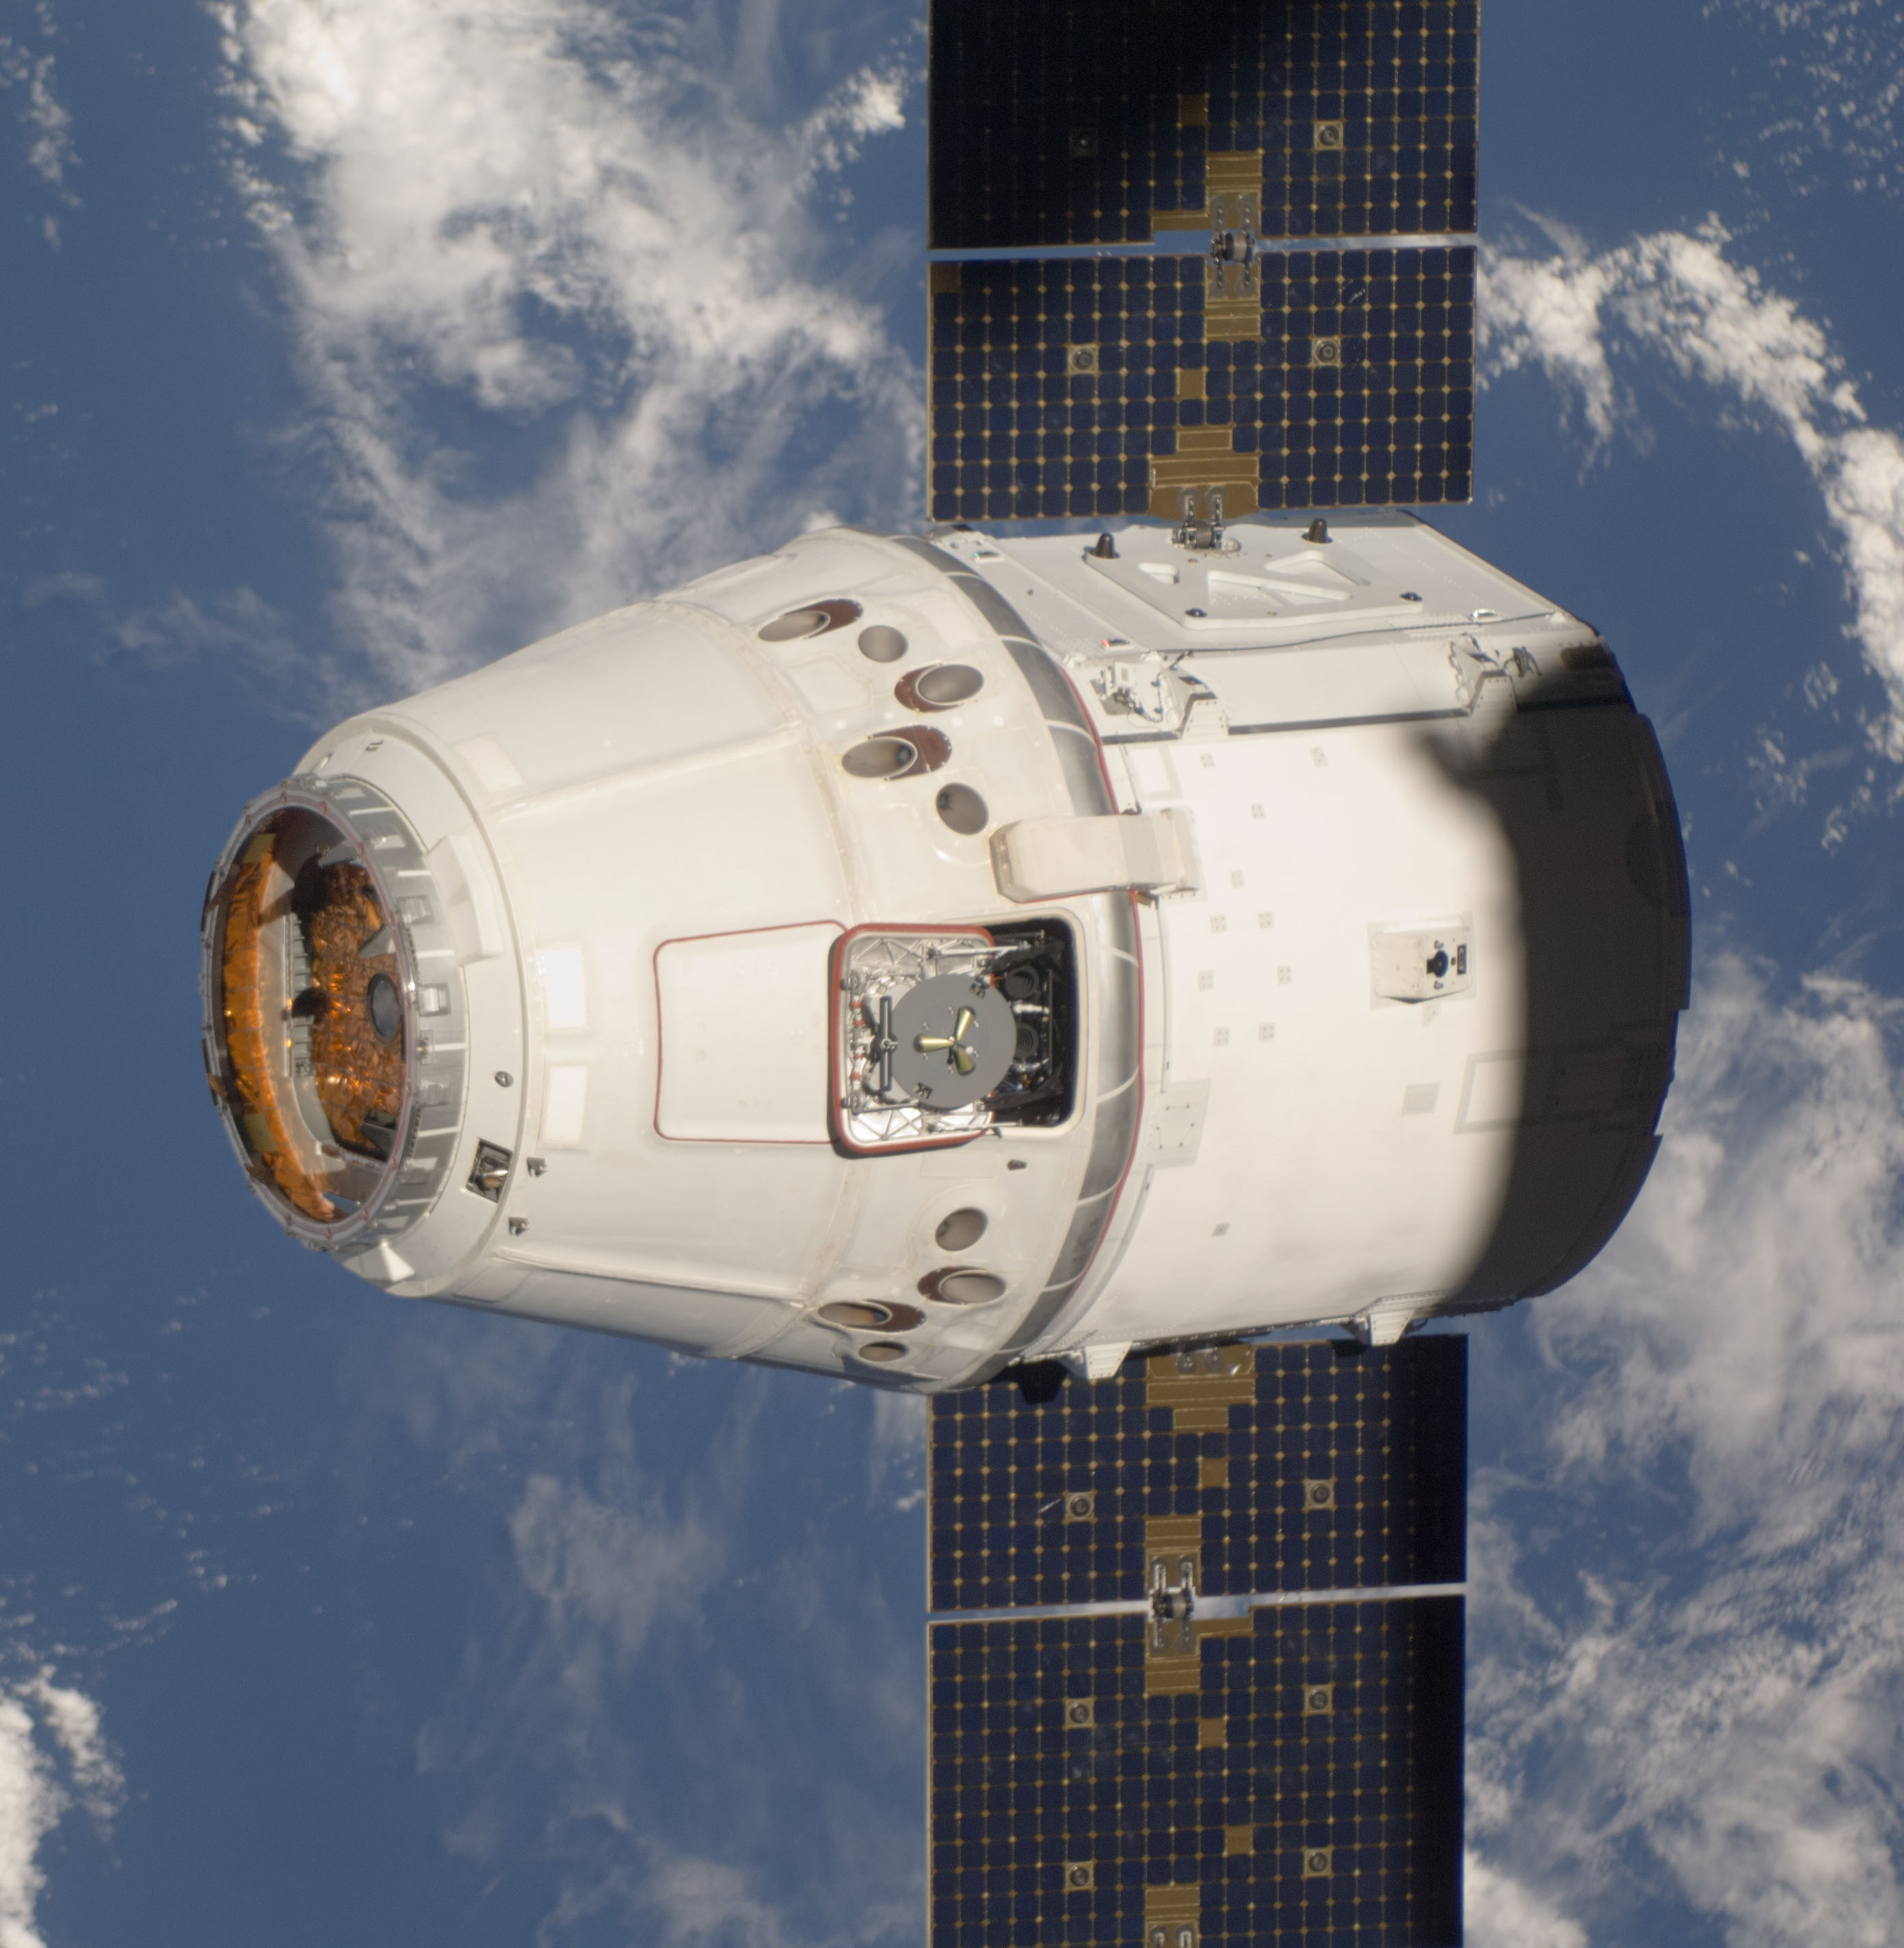 space flight spacex dragon v2 insider - photo #43